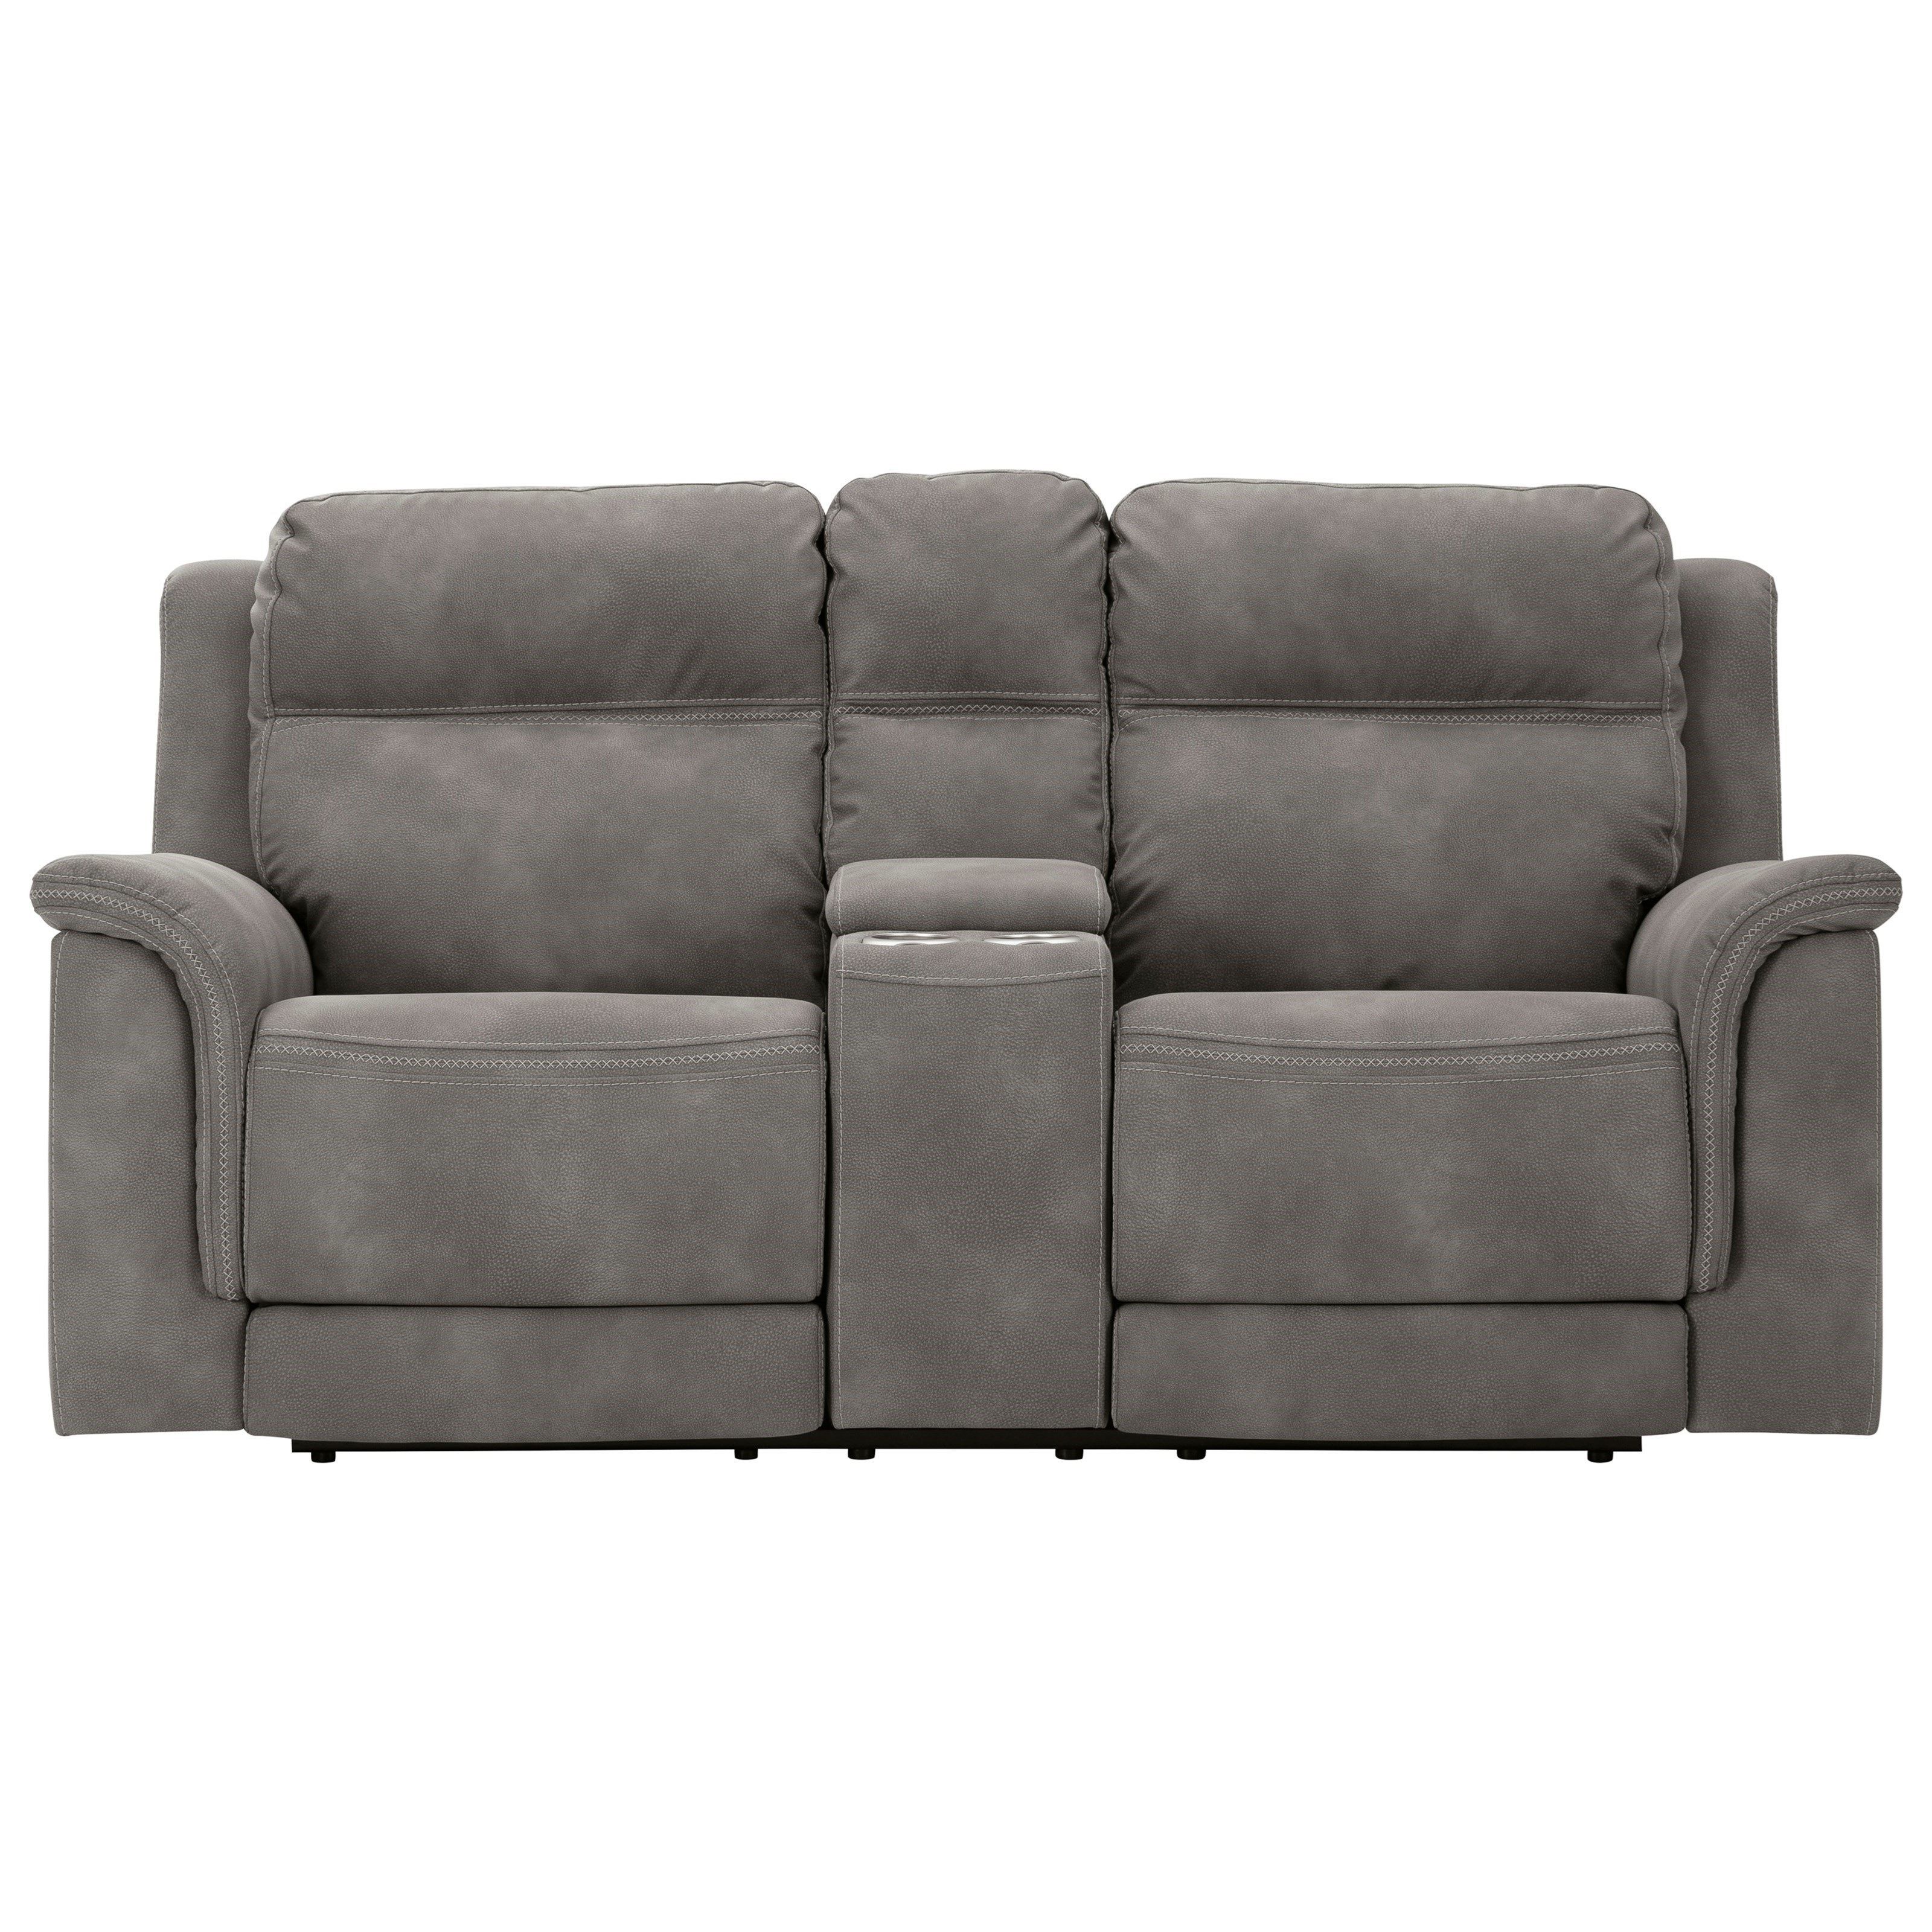 Signature Design By Ashley Next Gen Durapella 5930118 Zero Gravity Pwr Reclining Loveseat With Adj Headrests And Console Furniture And Appliancemart Reclining Loveseats